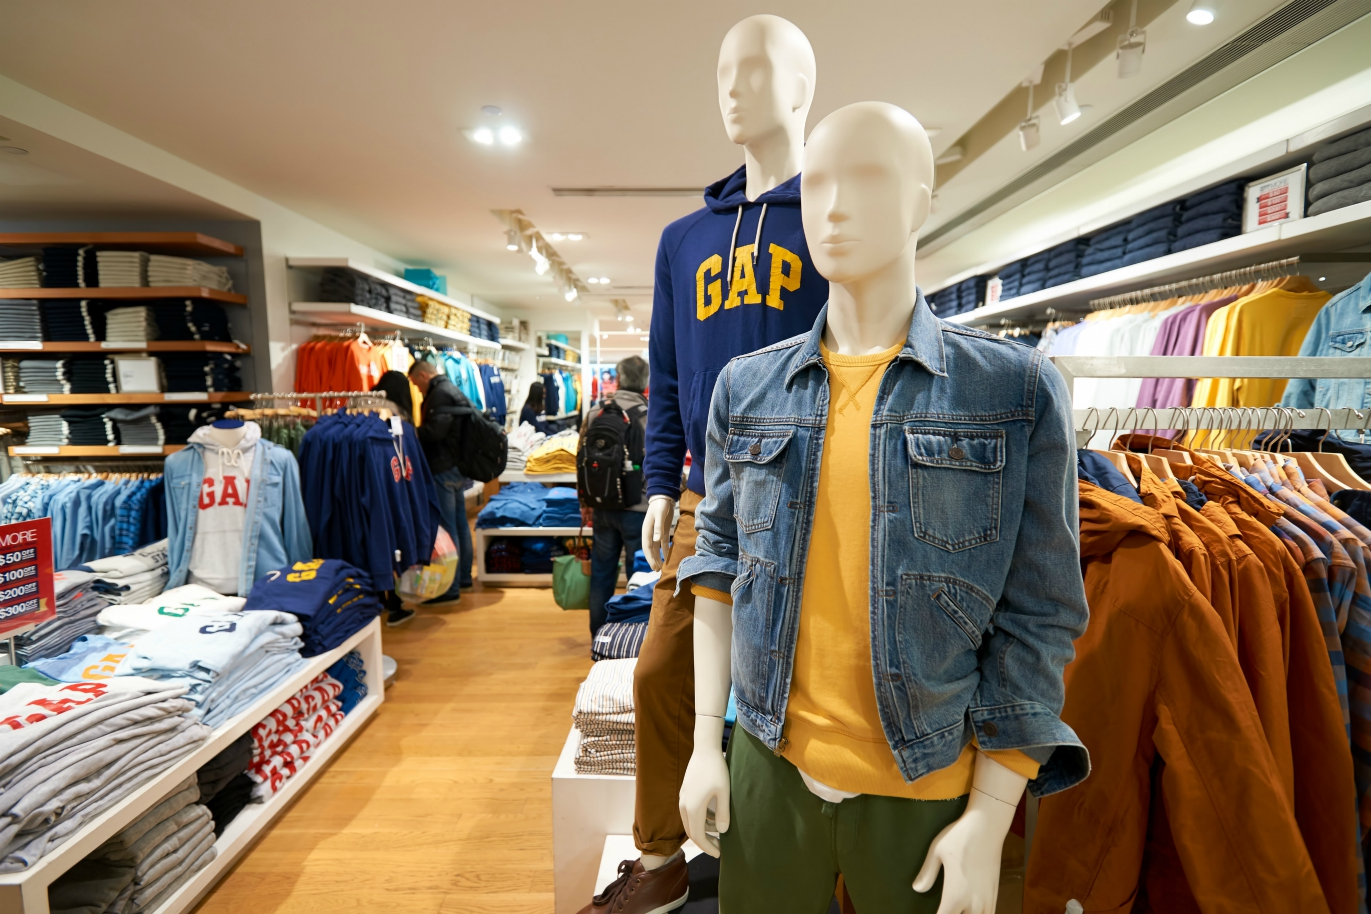 Art Peck is leaving his position as Gap CEO following a challenging Q3 as company earnings indicate lackluster sales drove the change.